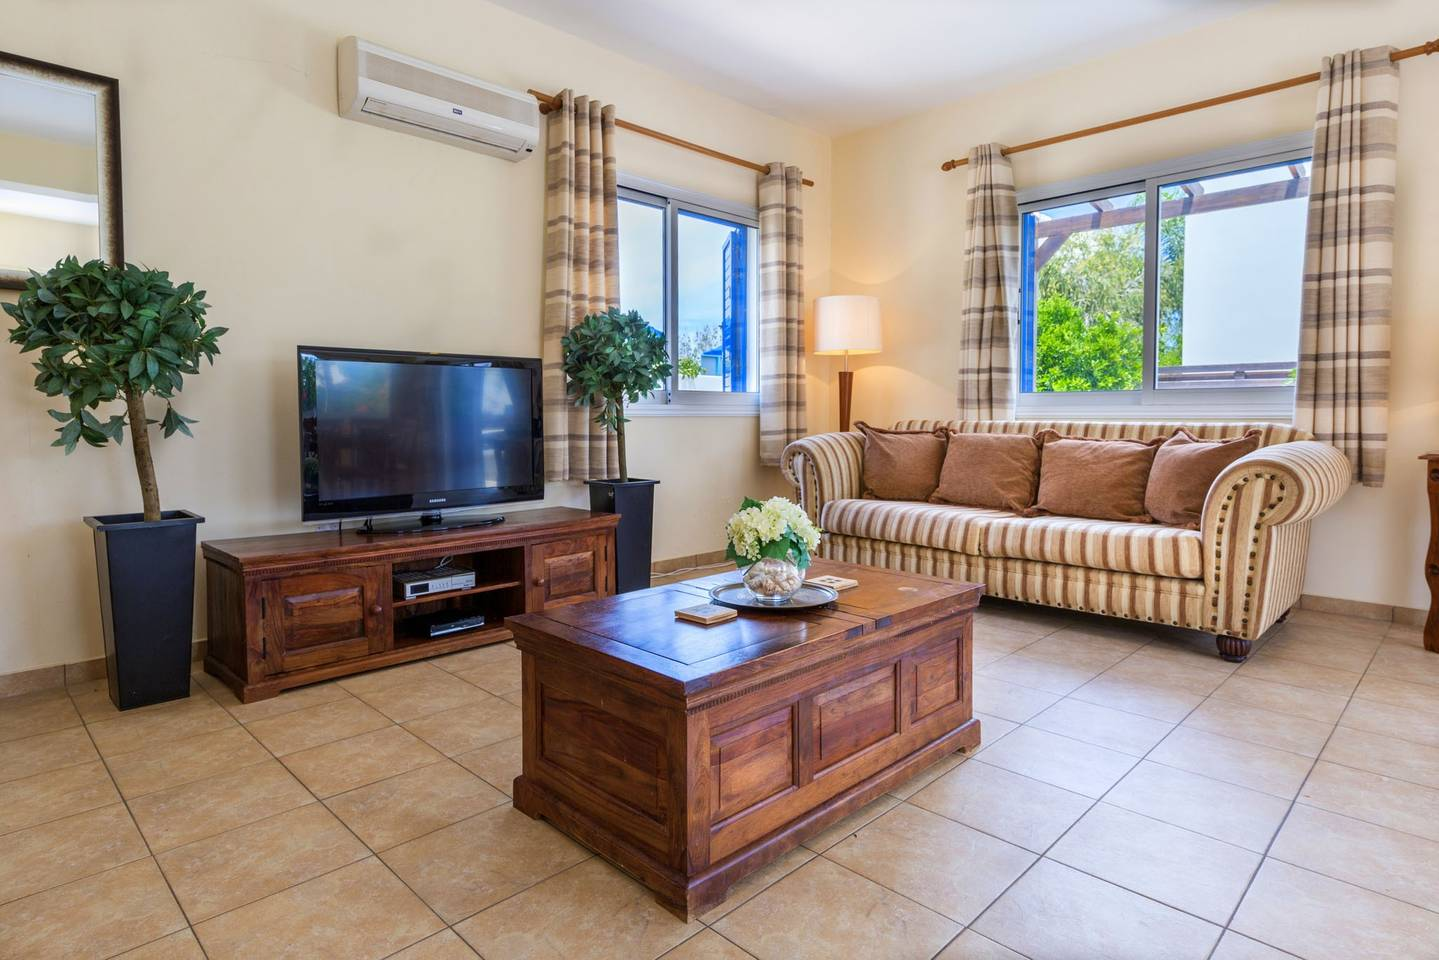 Villa Evace - 3 Bedroom Villa with Private Pool - 100m from Beach photo 18516332